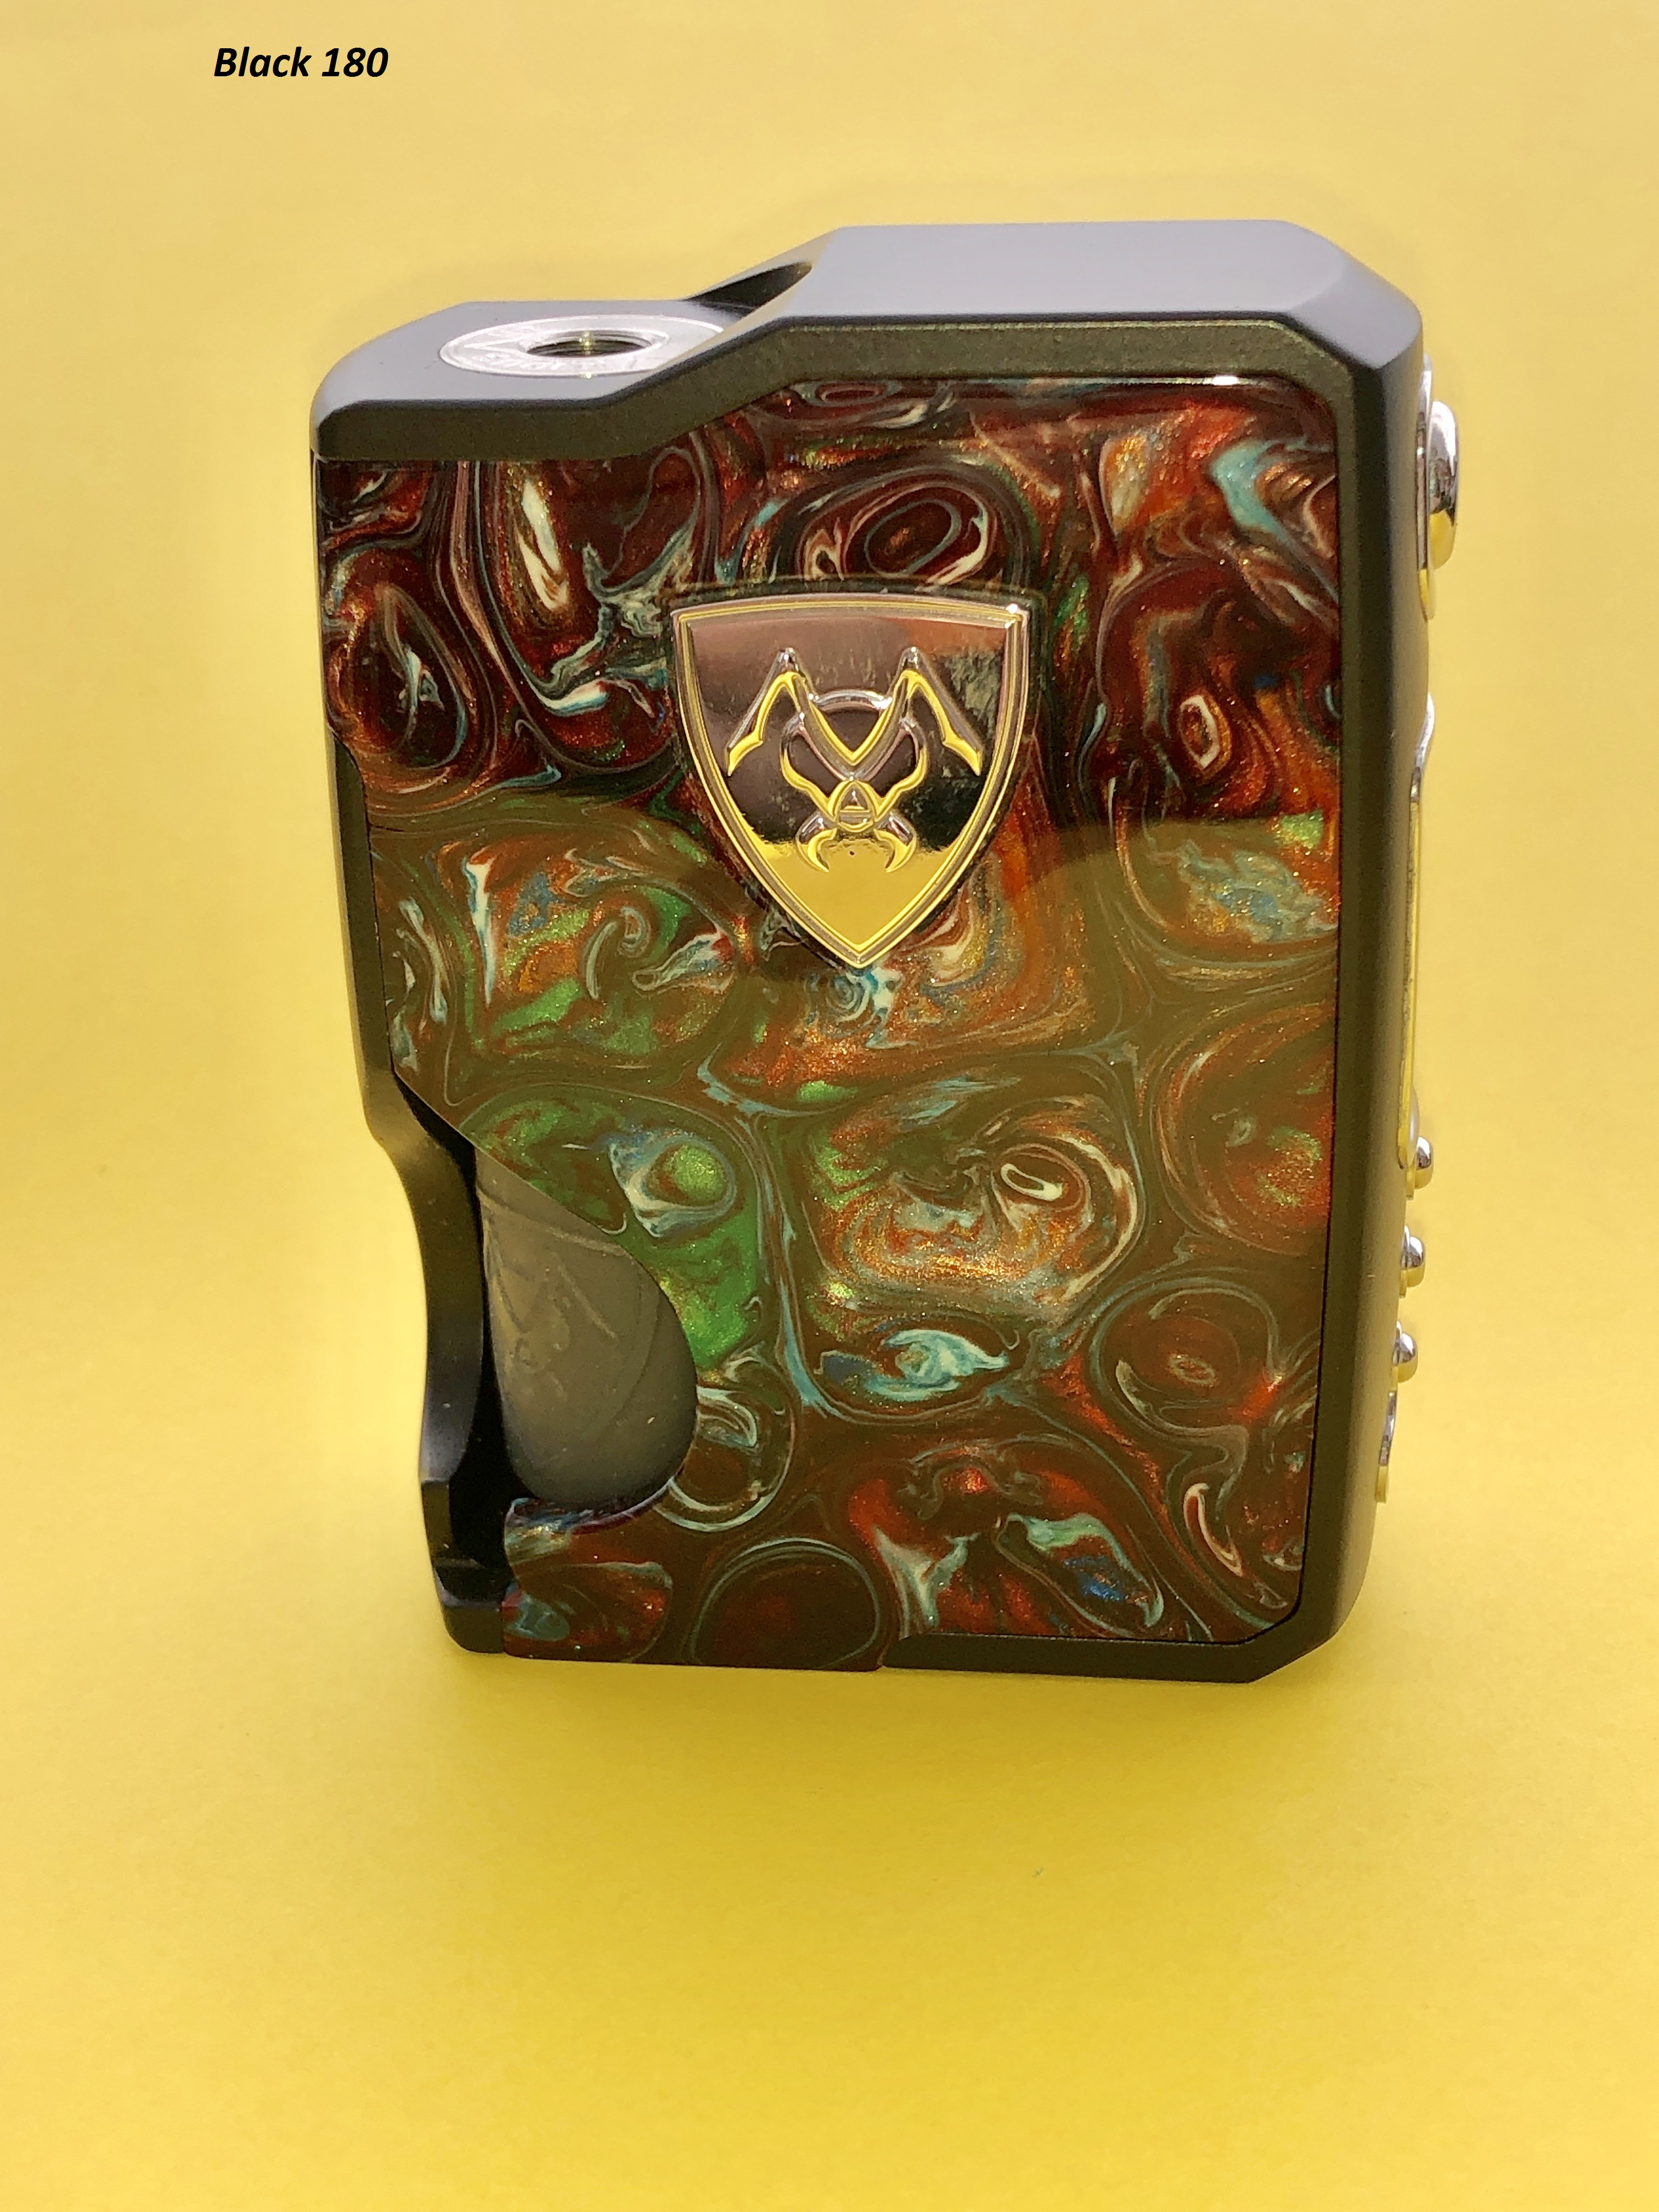 Vicious Ant Spade DNA75c 21700 Squonk Mod - Includes 2 Samsung 30t Batteries